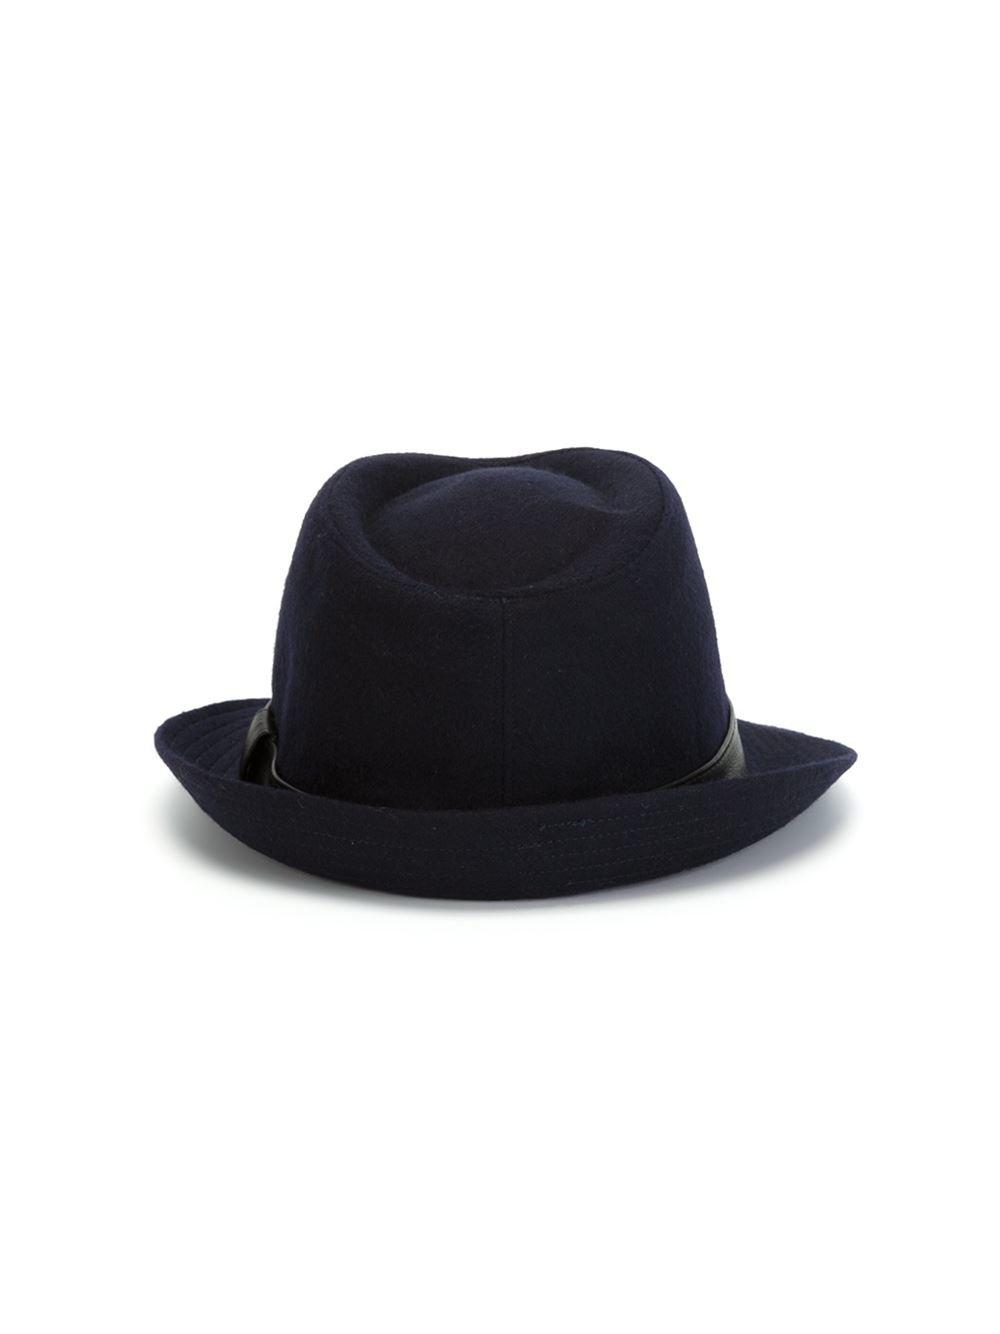 19b96053765 Lyst - Kiton Leather Band Fedora Hat in Blue for Men